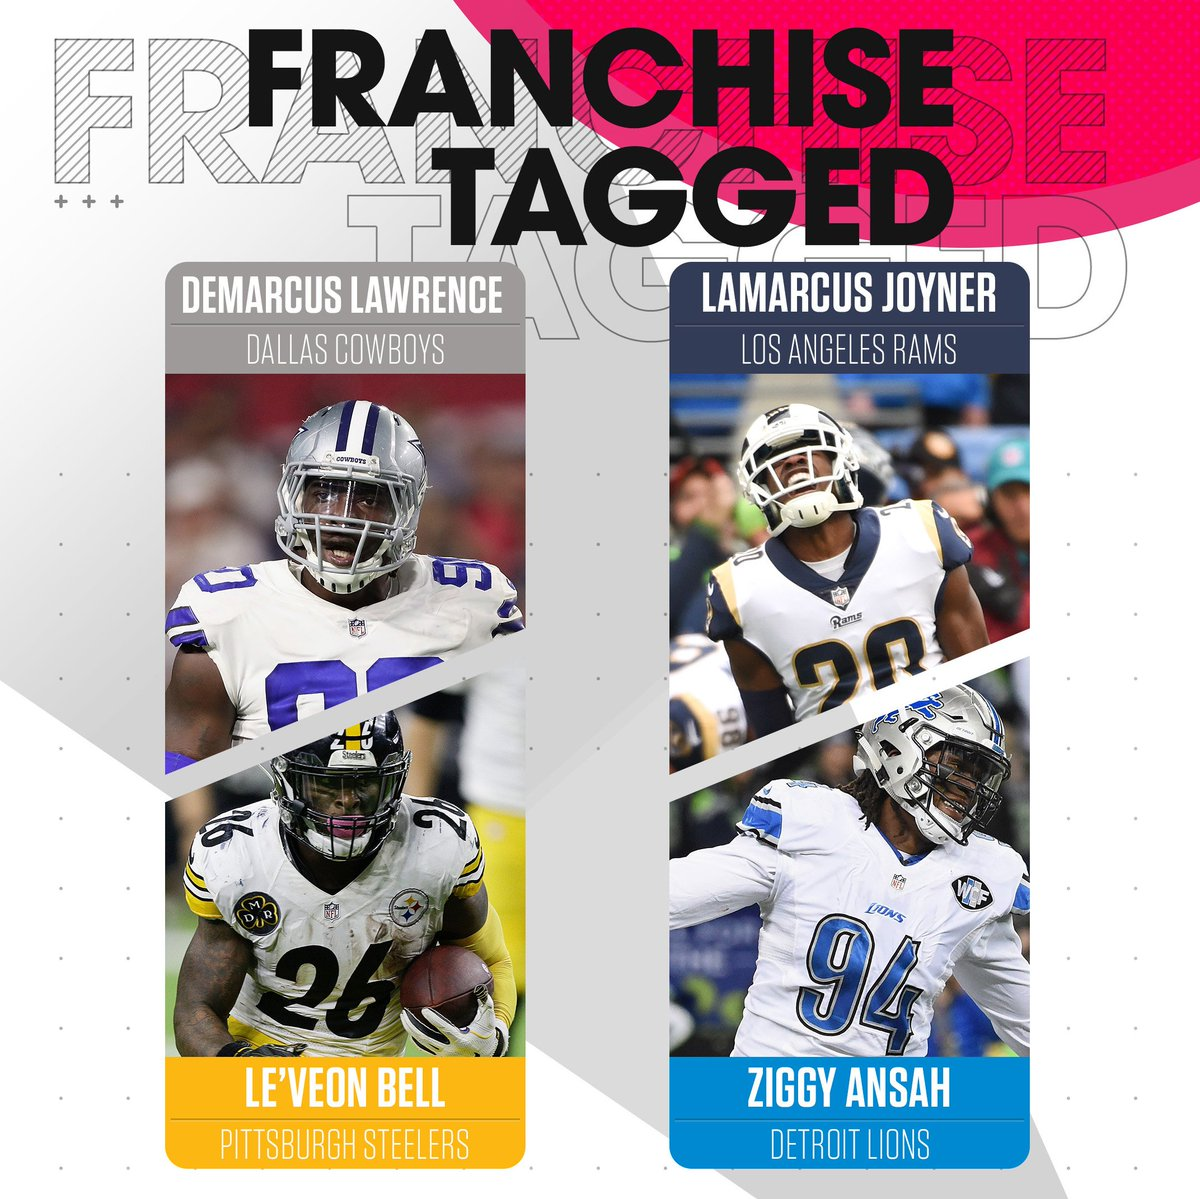 DeMarcus Lawrence ❌ Lamarcus Joyner ❌ Le'Veon Bell ❌ Ziggy Ansah ❌  The free agent class of 2019 is going to be 🔥